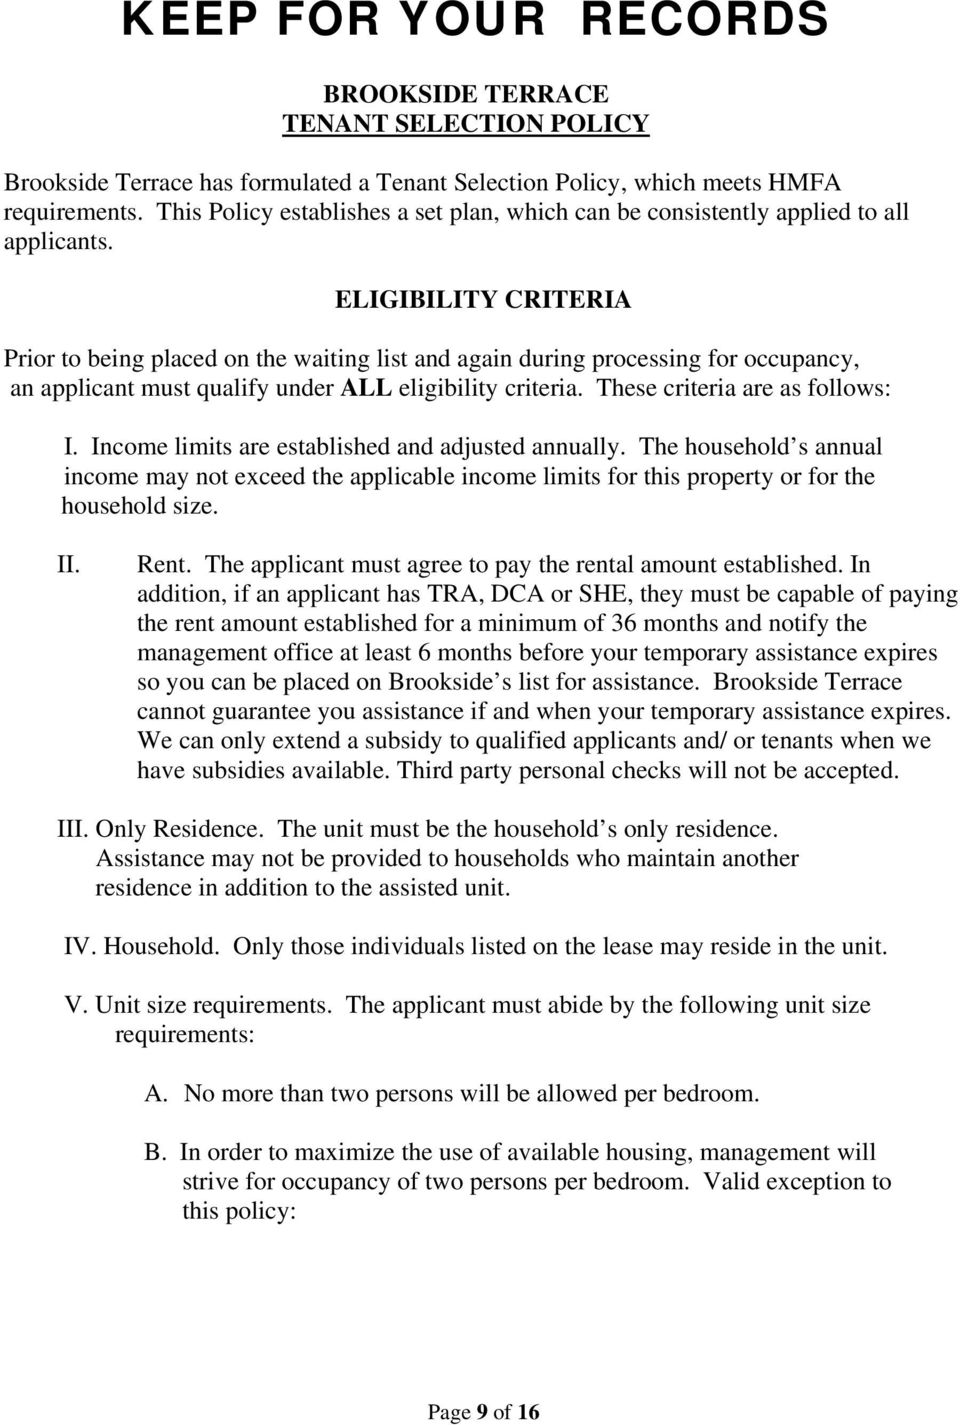 ELIGIBILITY CRITERIA Prior to being placed on the waiting list and again during processing for occupancy, an applicant must qualify under ALL eligibility criteria. These criteria are as follows: I.